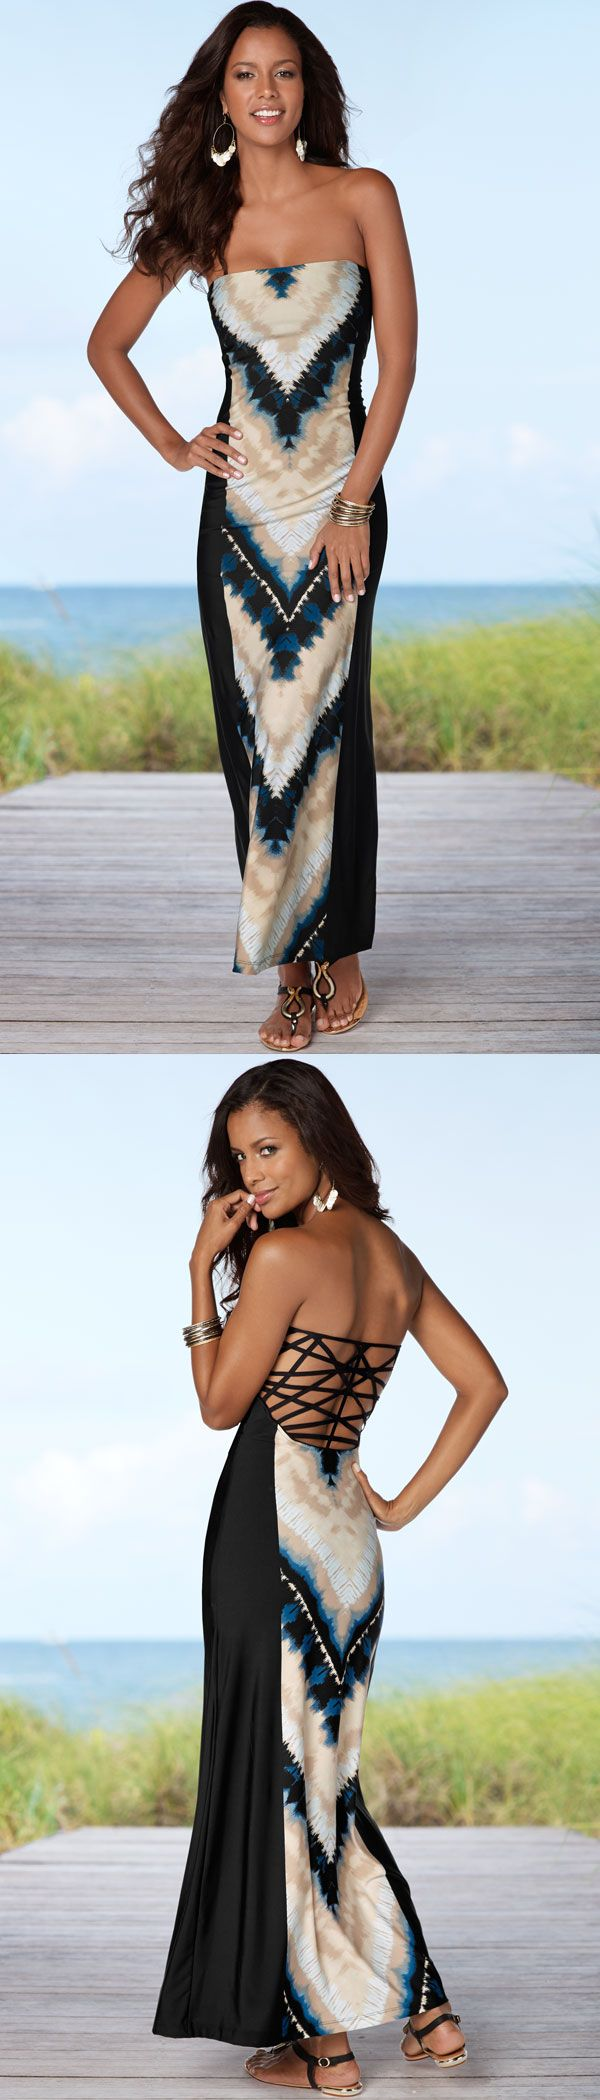 Move in style with this gorgeous back detail tye die maxi! Venus tie dye maxi and snake detail sandal.